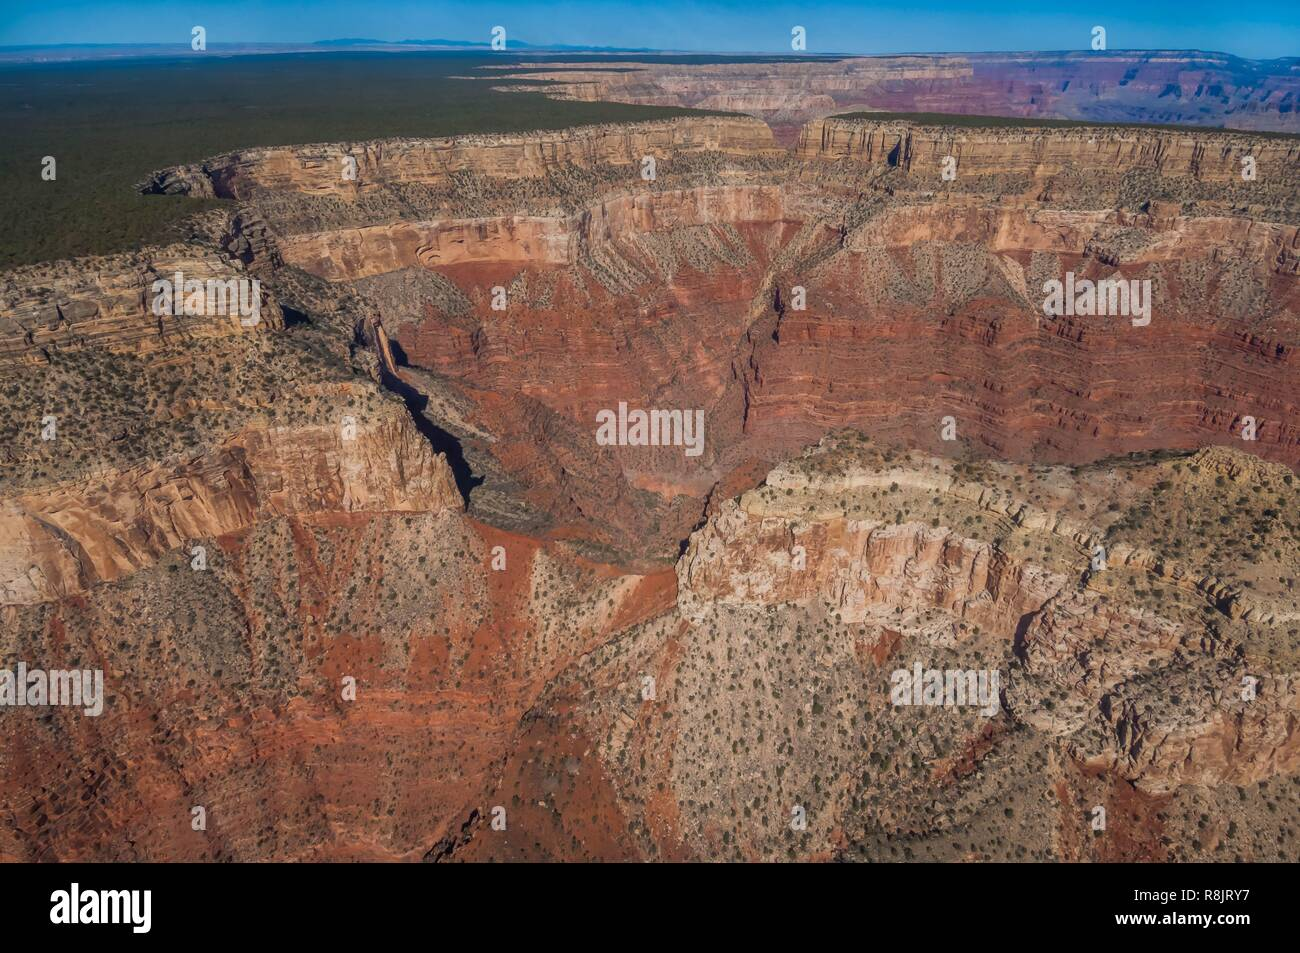 United States, Arizona, Grand Canyon National Park, helicopter view (aerial view) - Stock Image